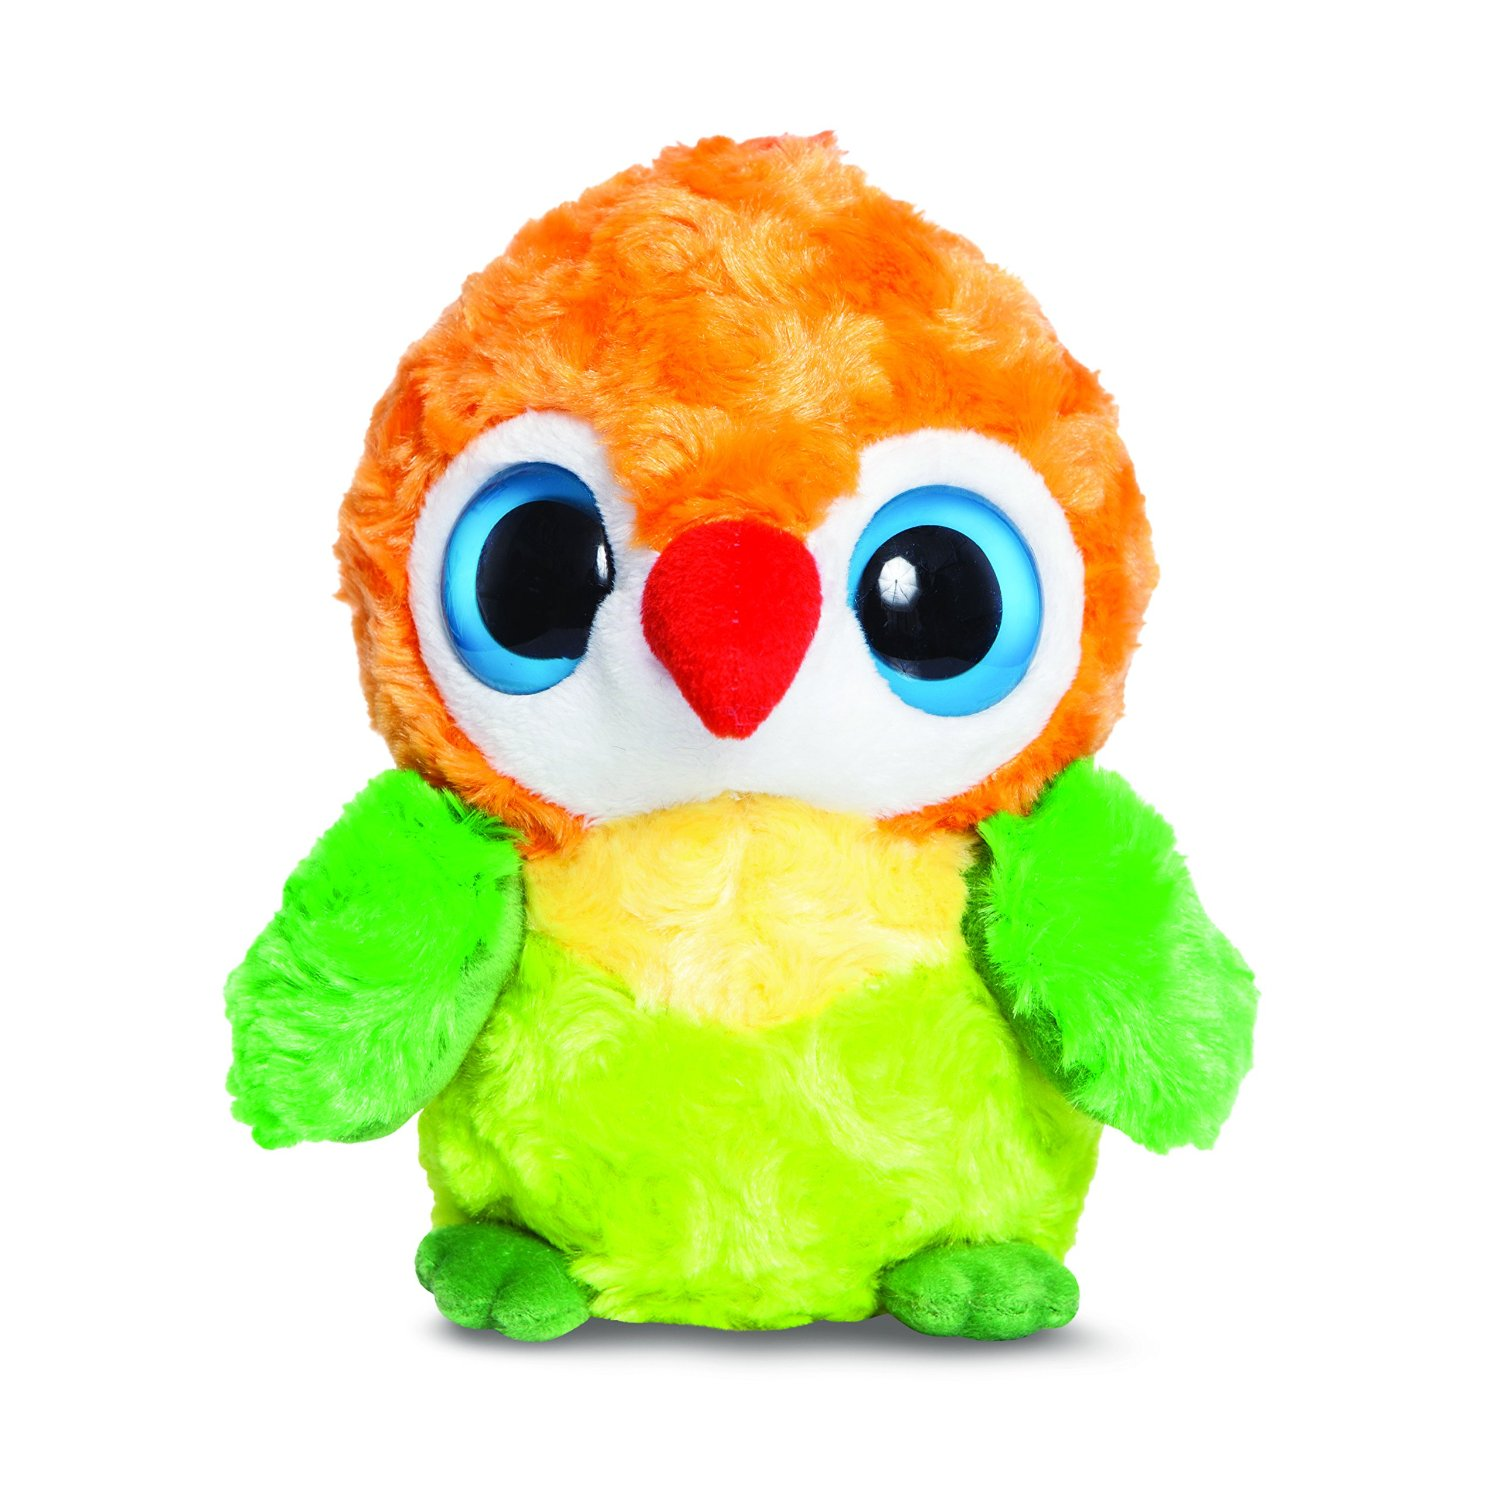 YooHoo & Friends - Love Bird, peluche, 13 cm (Aurora World 60375)